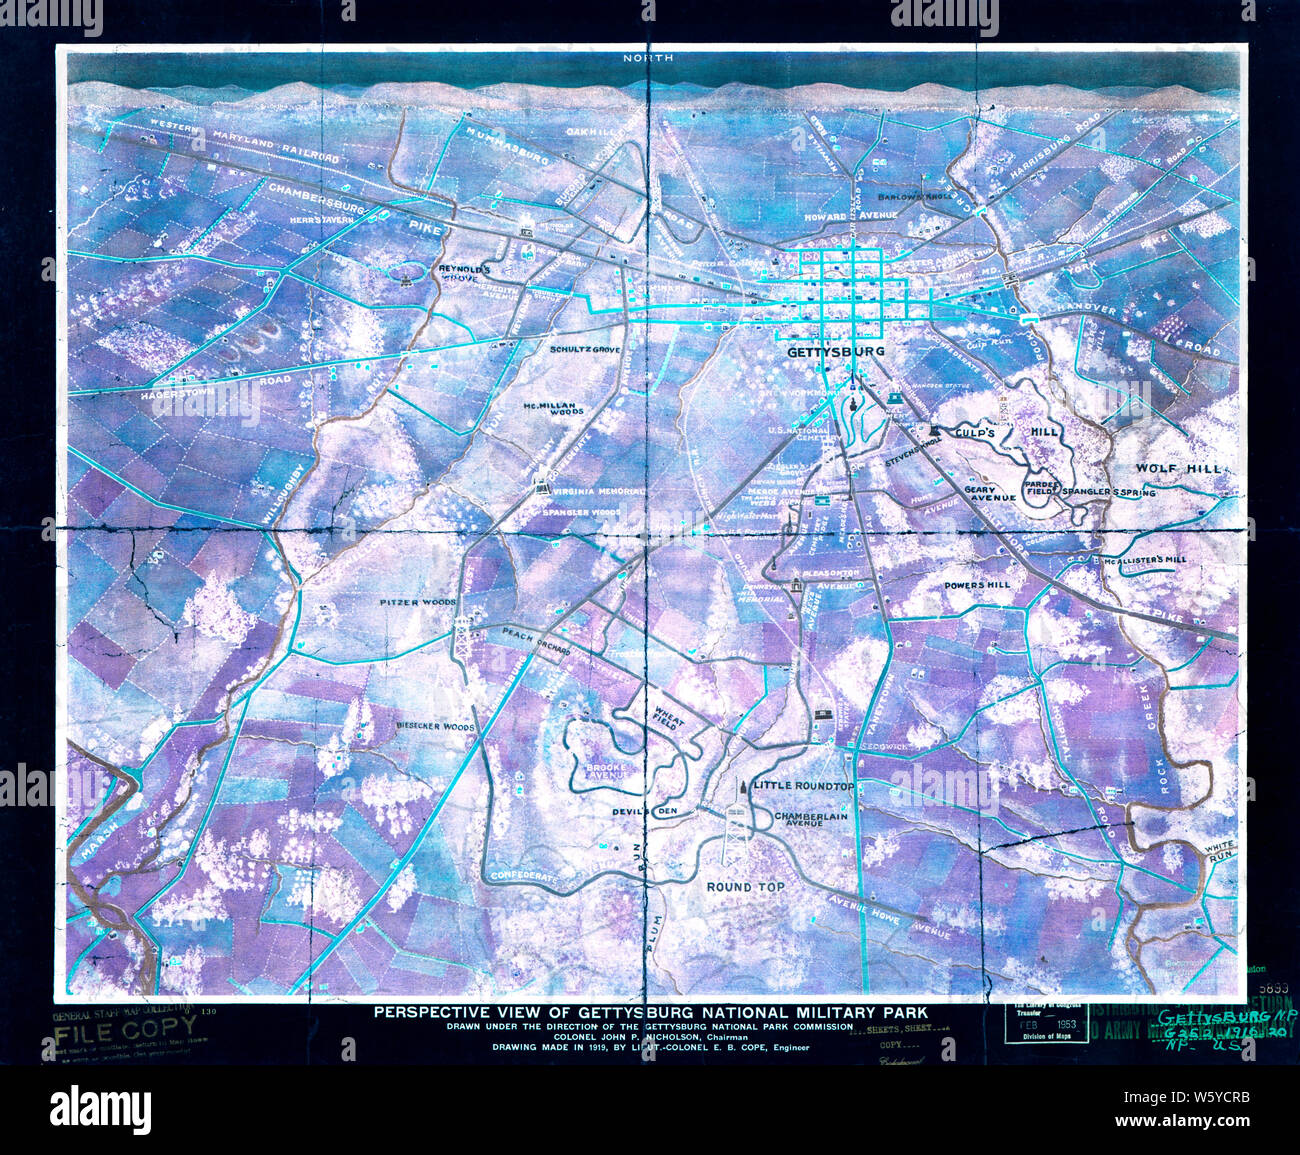 Civil War Maps 1276 Perspective view of Gettysburg National ... on gettysburg historic site map, gettysburg johnny reb trail guide, gettysburg national history, gettysburg tour map, gettysburg cemetery map, gettysburg city map, gettysburg national visitor center, gettysburg visitor center gift shop, gettysburg visitor center hours, pennsylvania national parks map, gettysburg south dakota map, cemetery hill map, gettysburg address map, gettysburg walking map, gettysburg tourism map, gettysburg virginia map, gettysburg pennsylvania on us map, gettysburg topographic map, jackson parish louisiana map, gettysburg monuments map by state,